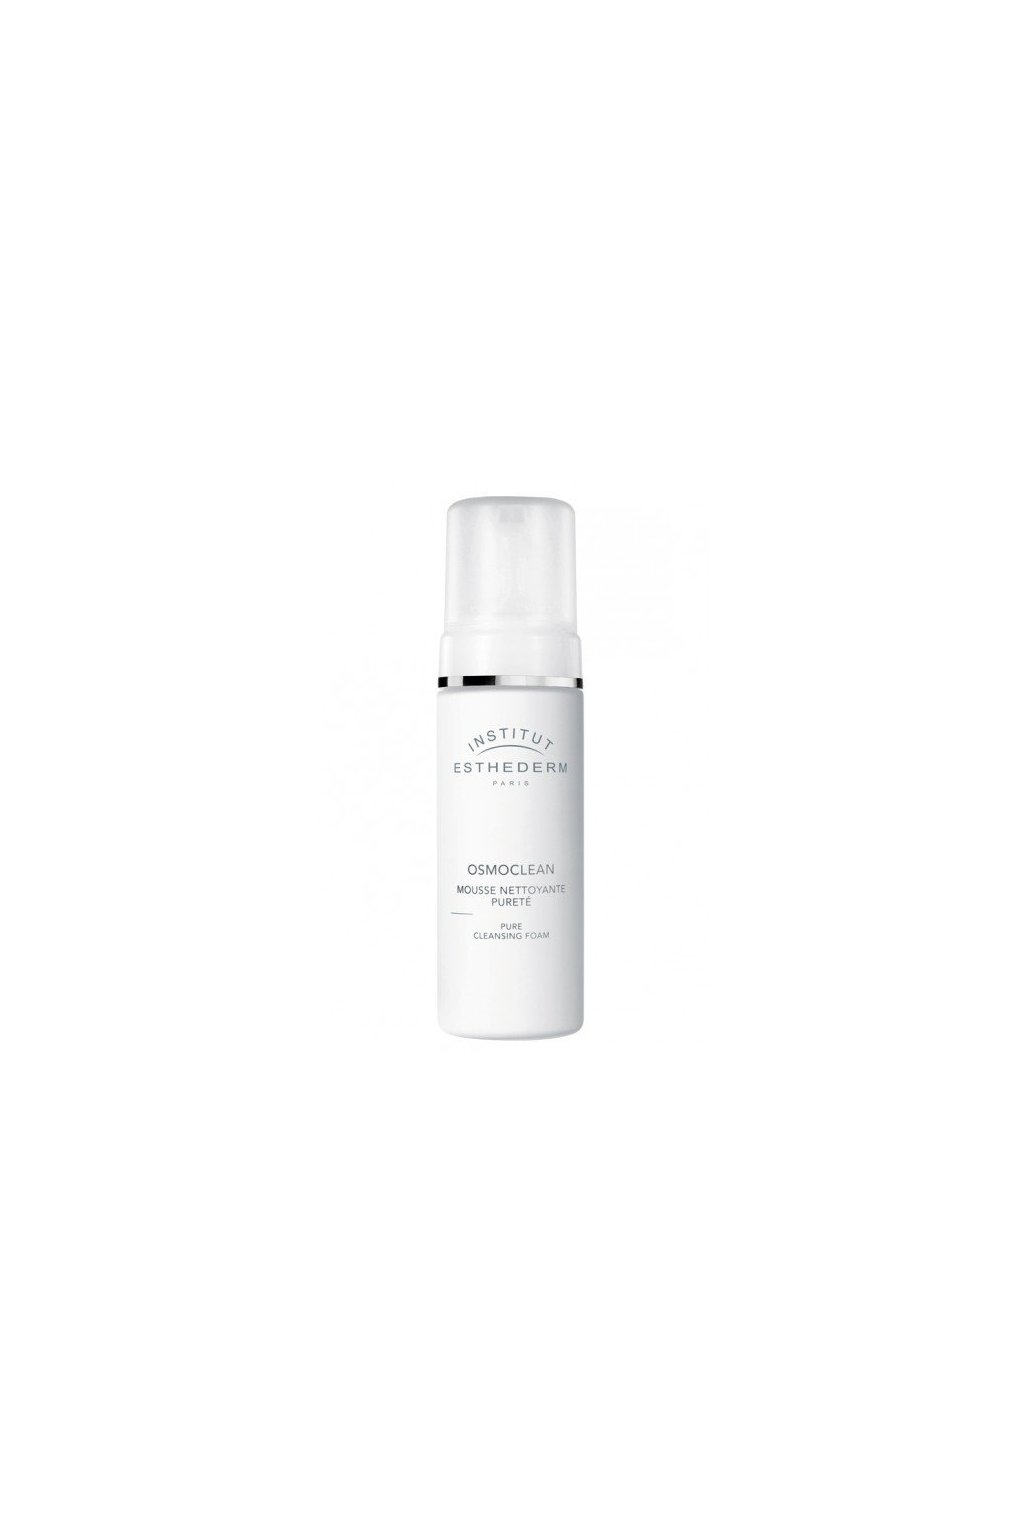 pure cleansing foam hlbkovo cistiaca pena 126 w1200 flags1